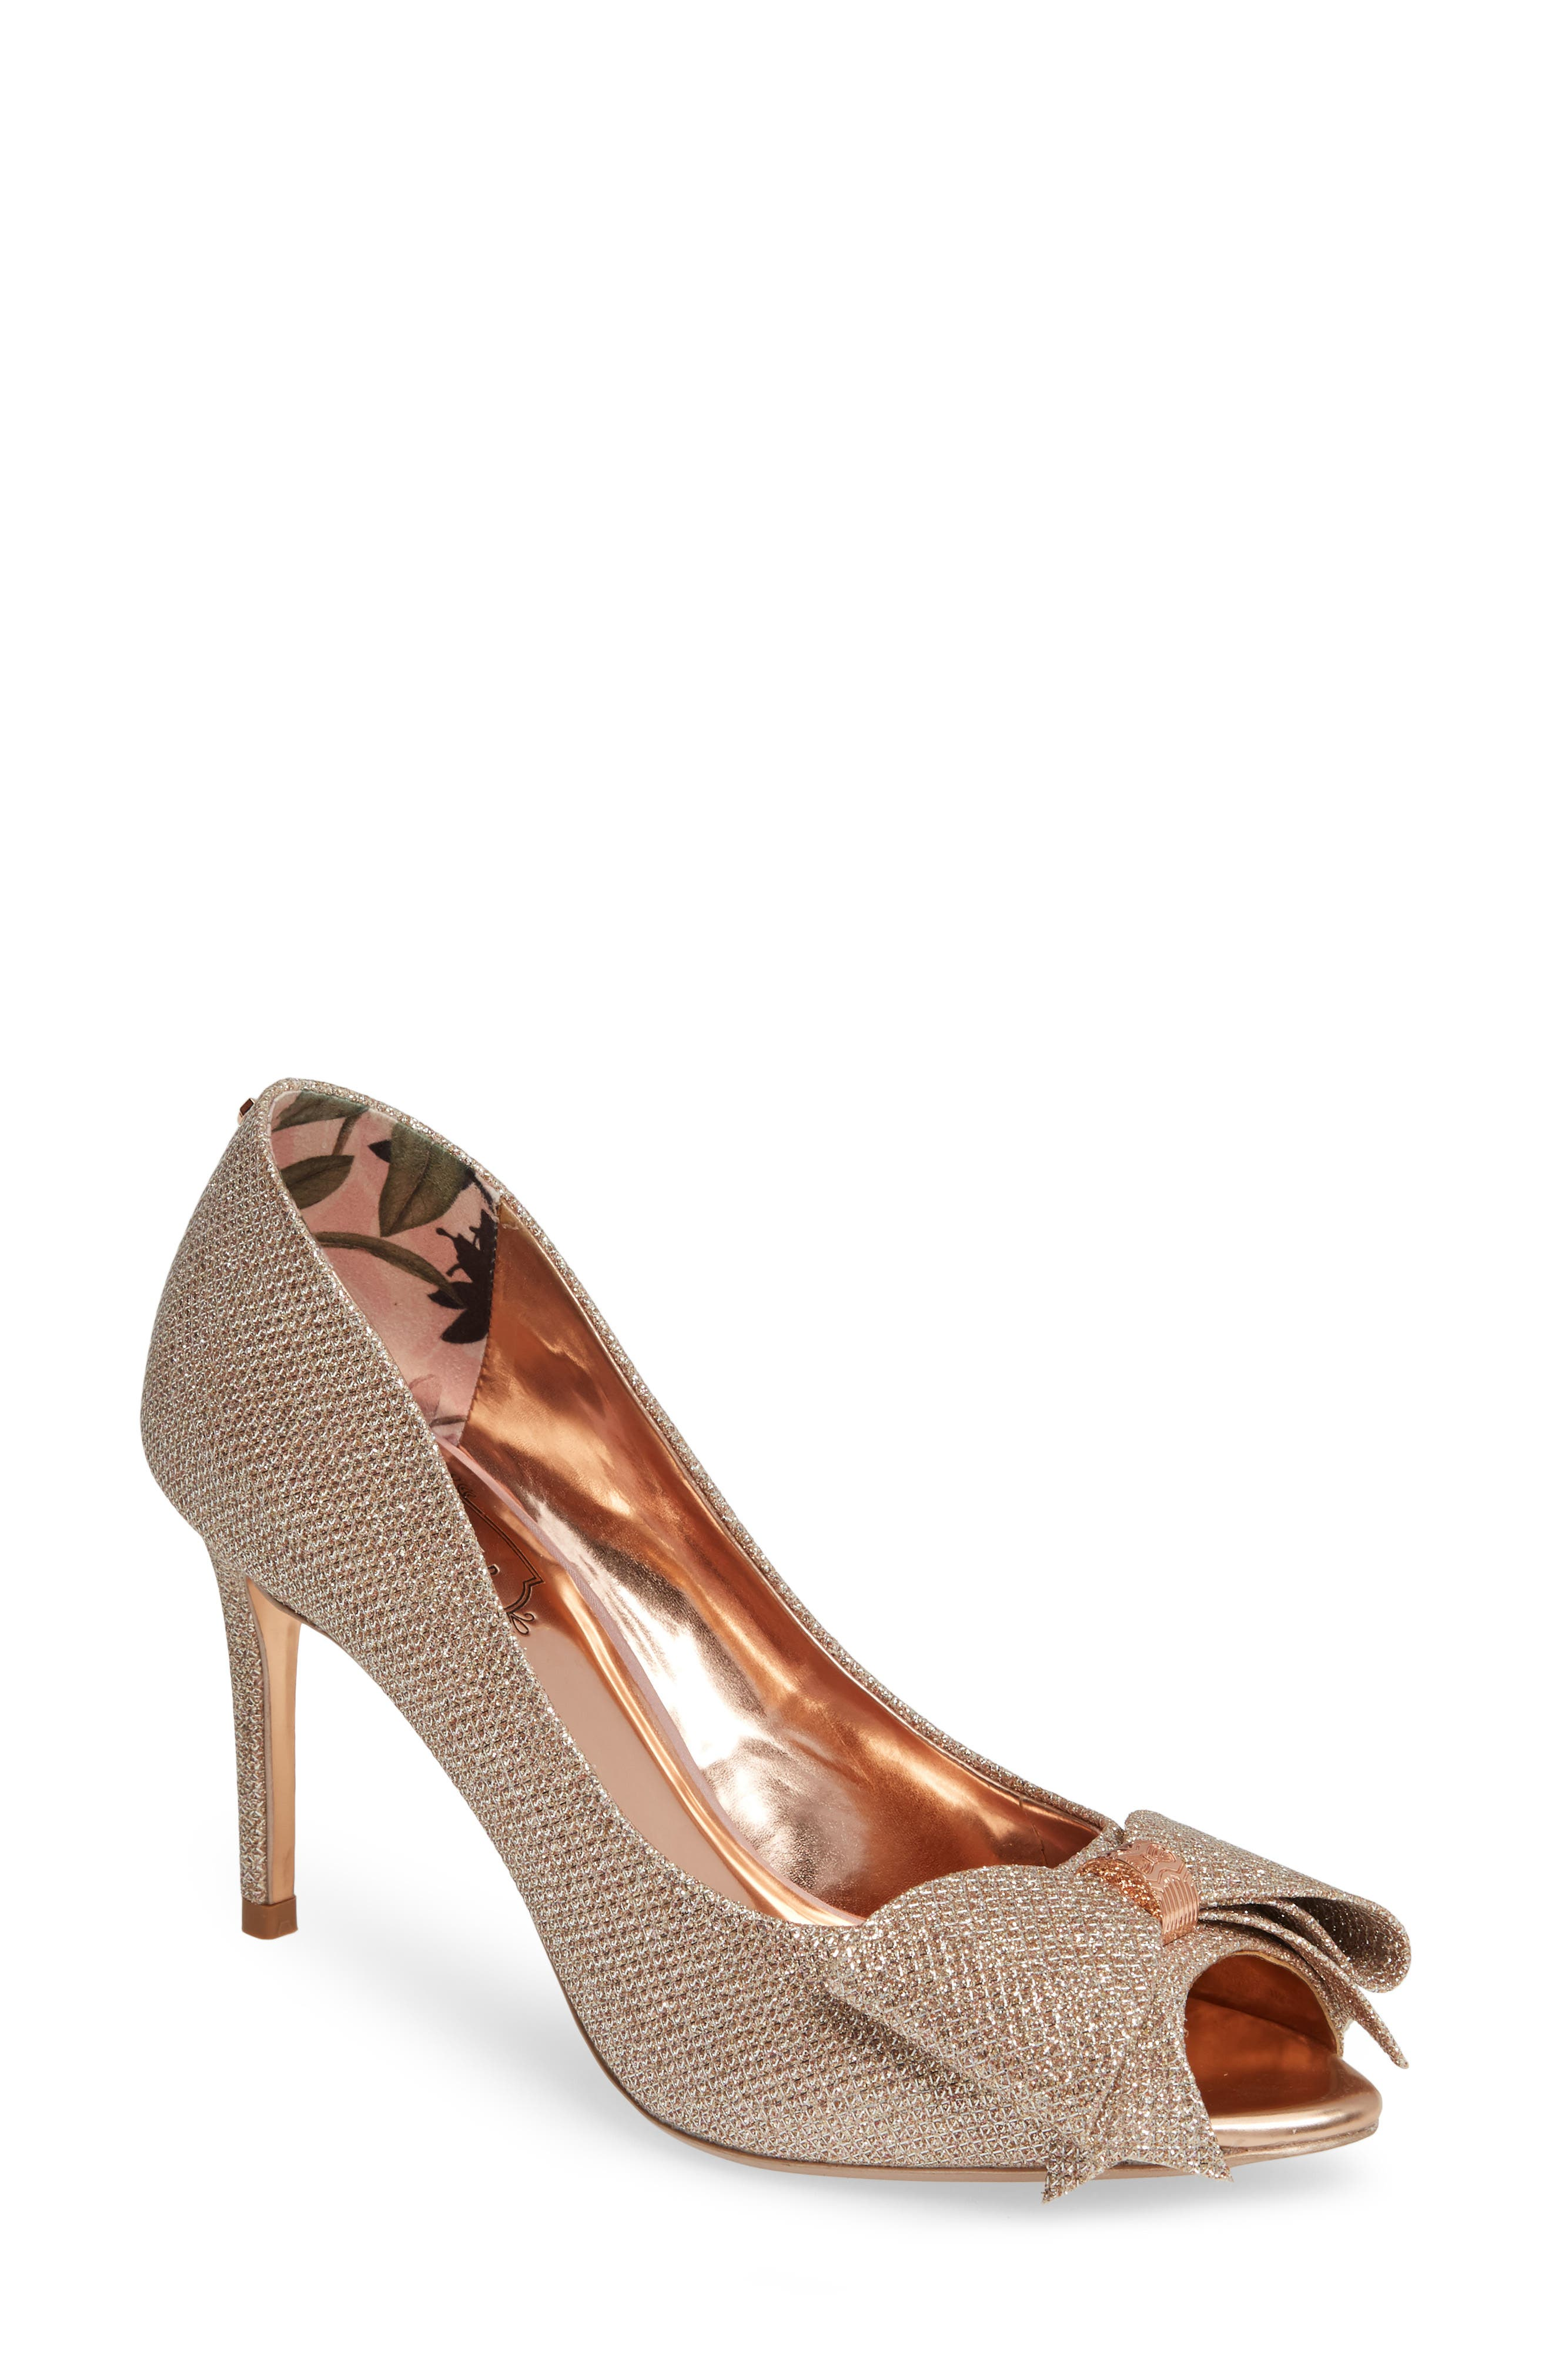 Ted Baker London Clearance Shoes